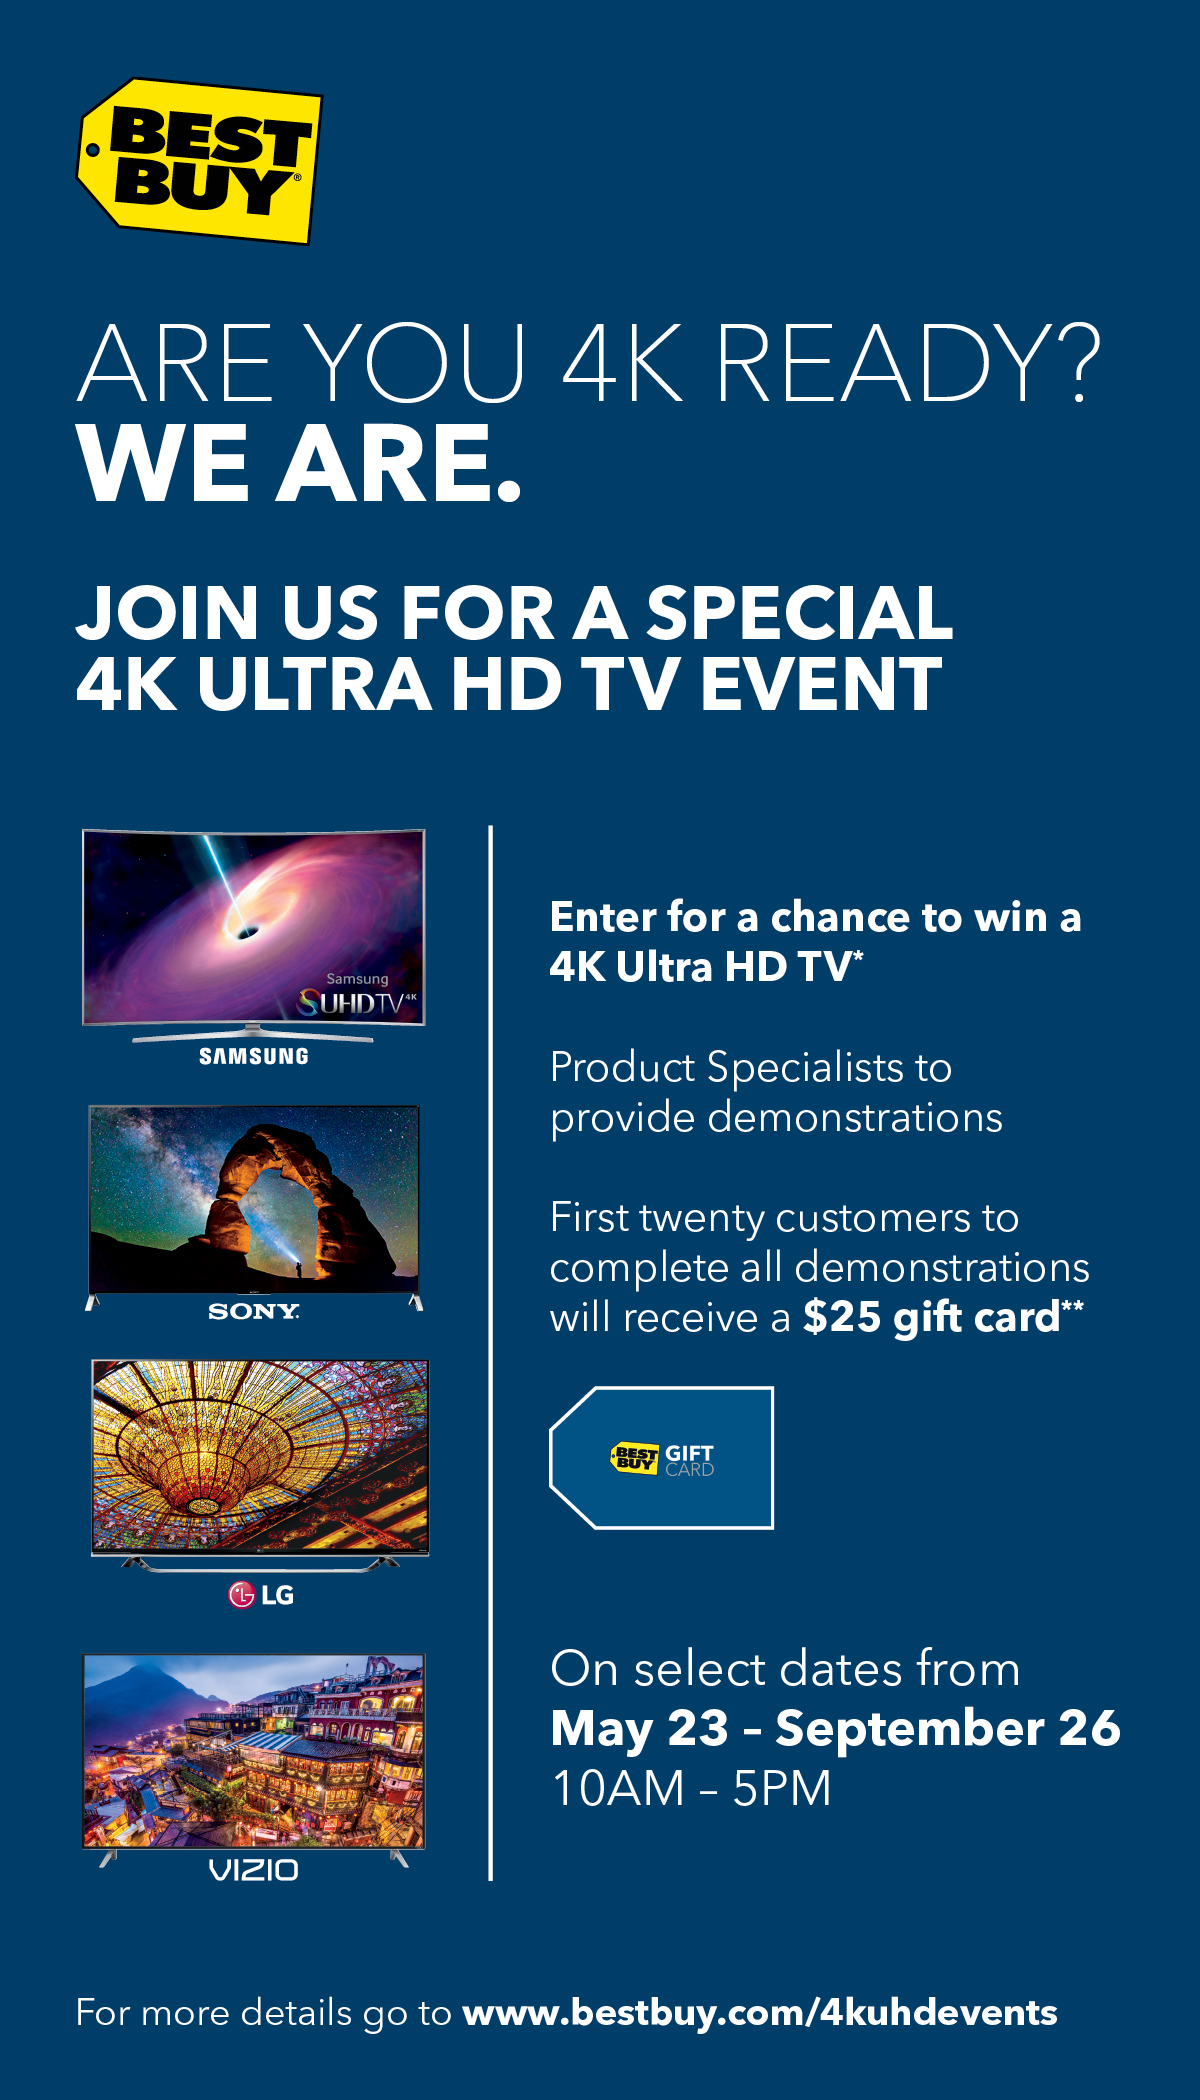 4K Ultra HD In-store Events Happening Now at Best Buy